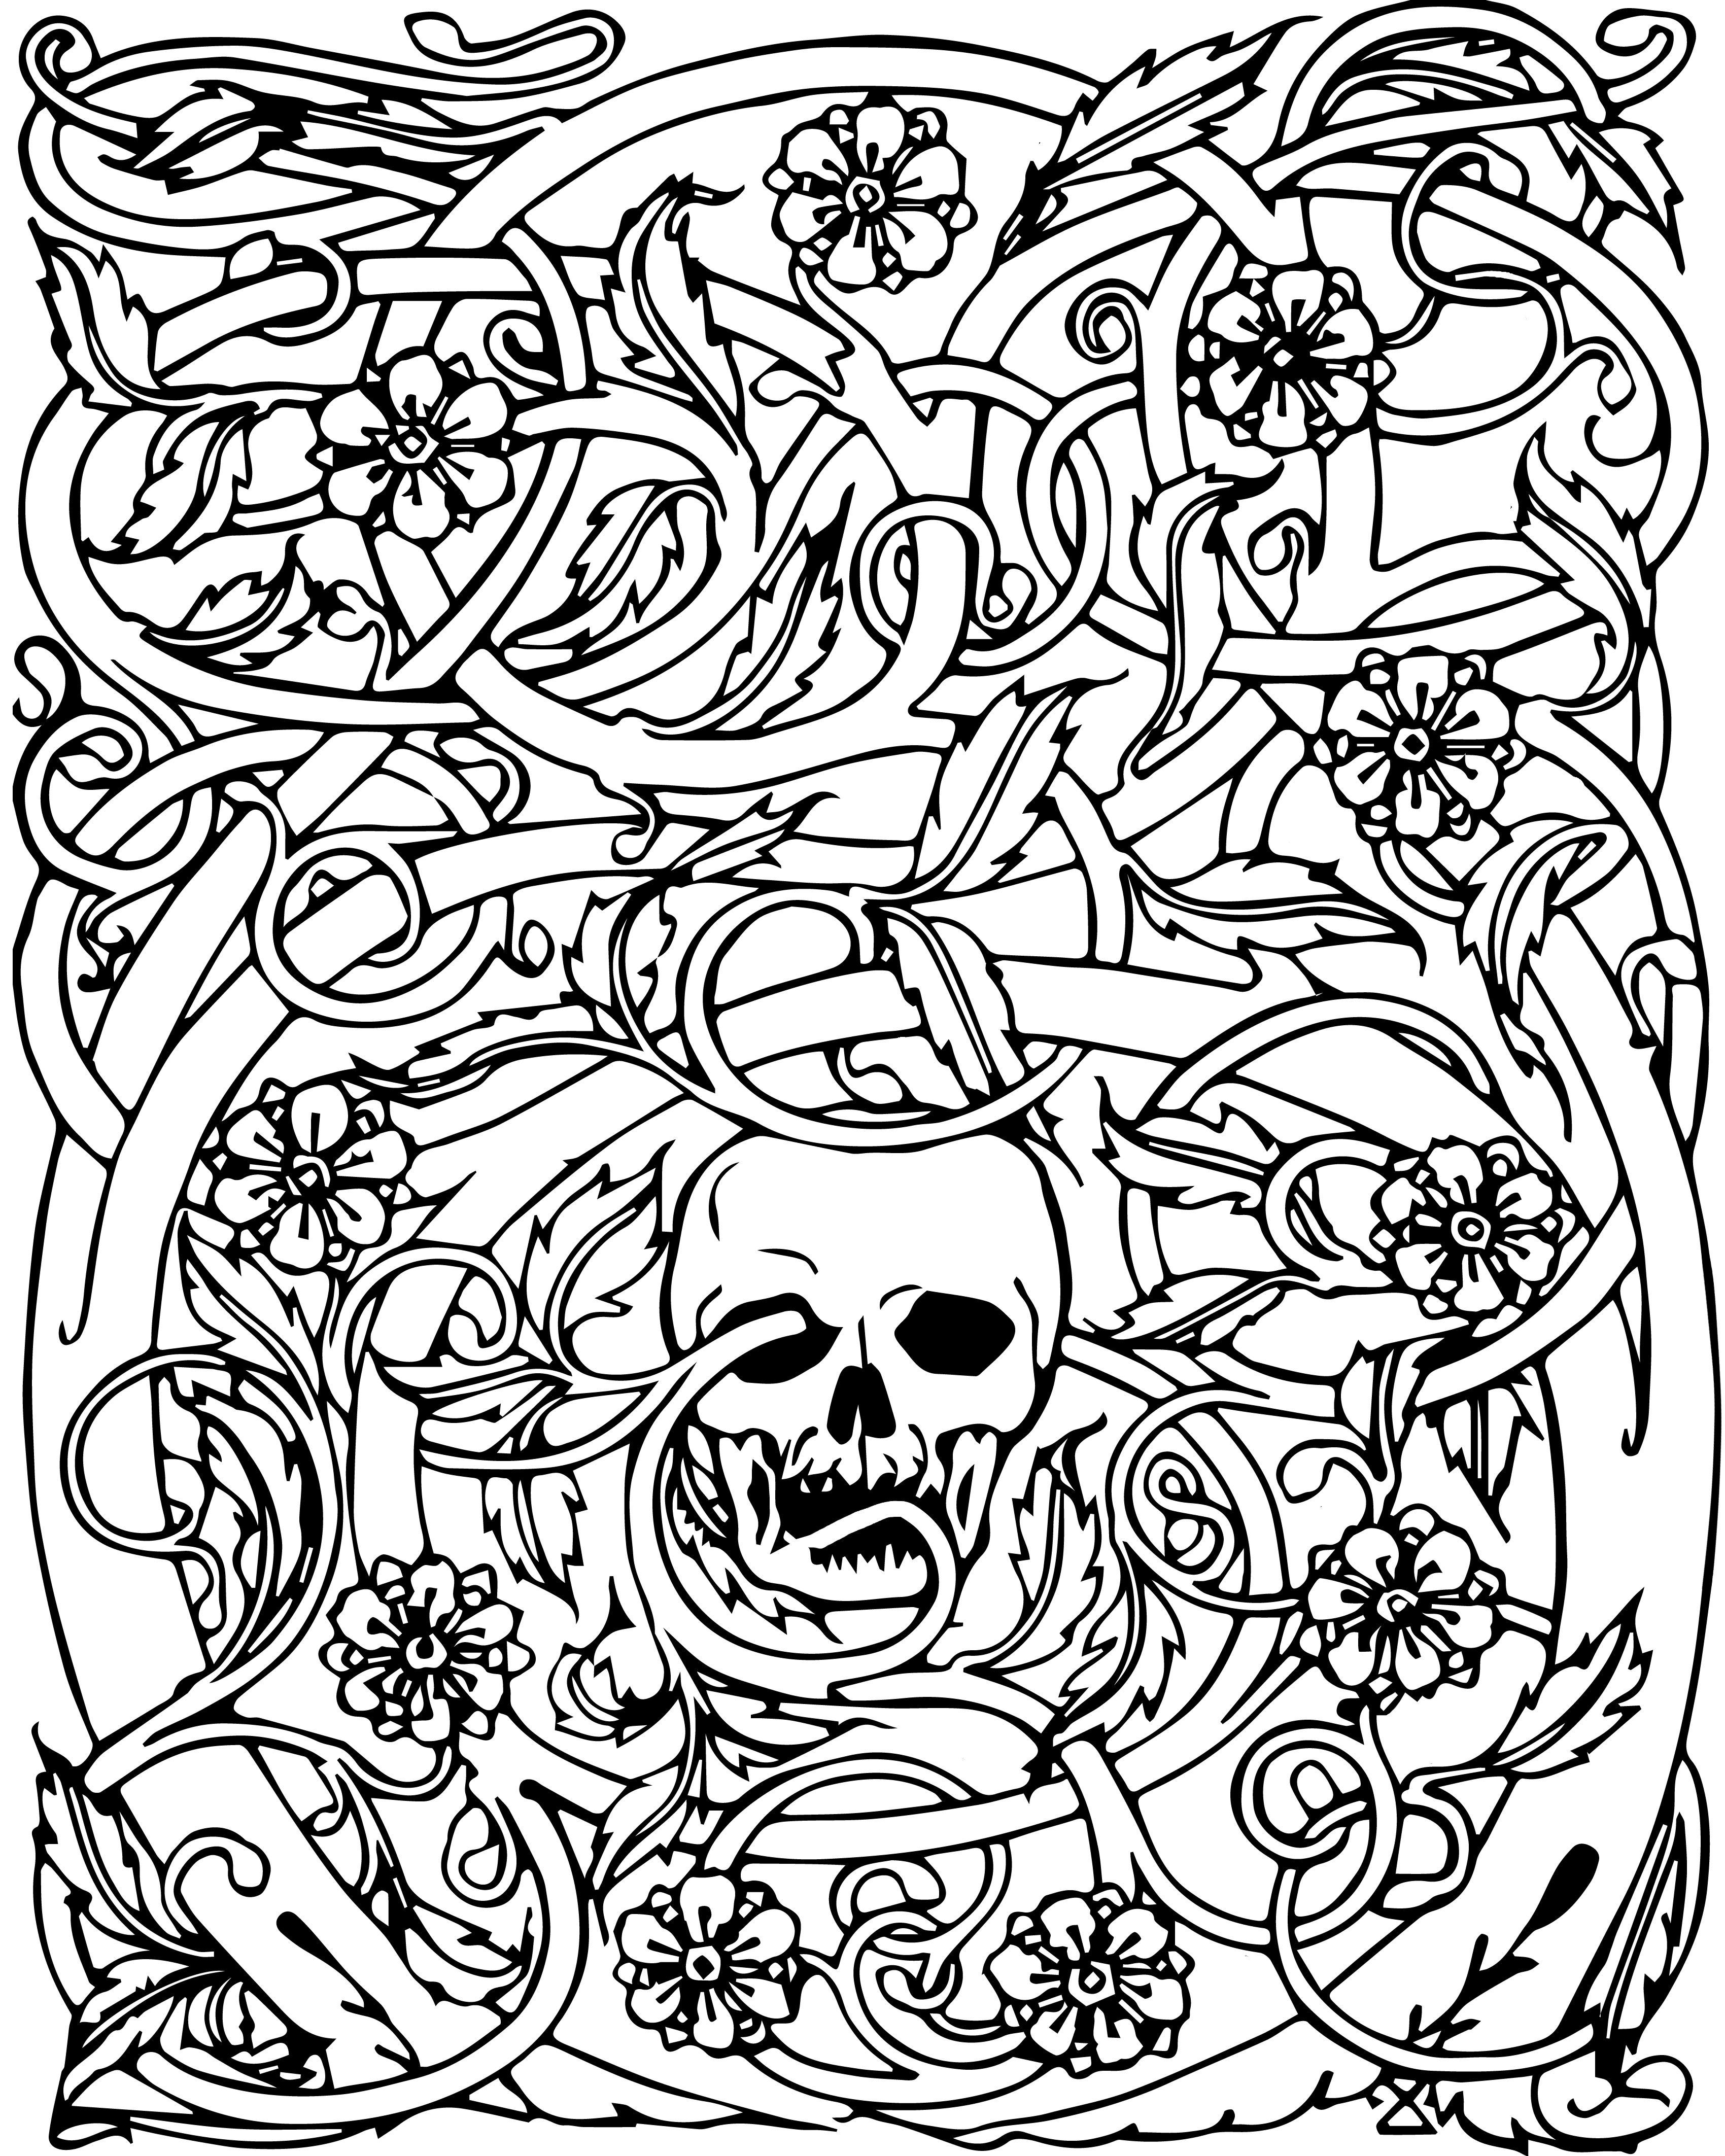 Free adult halloween coloring pages ubb coloring pages kids